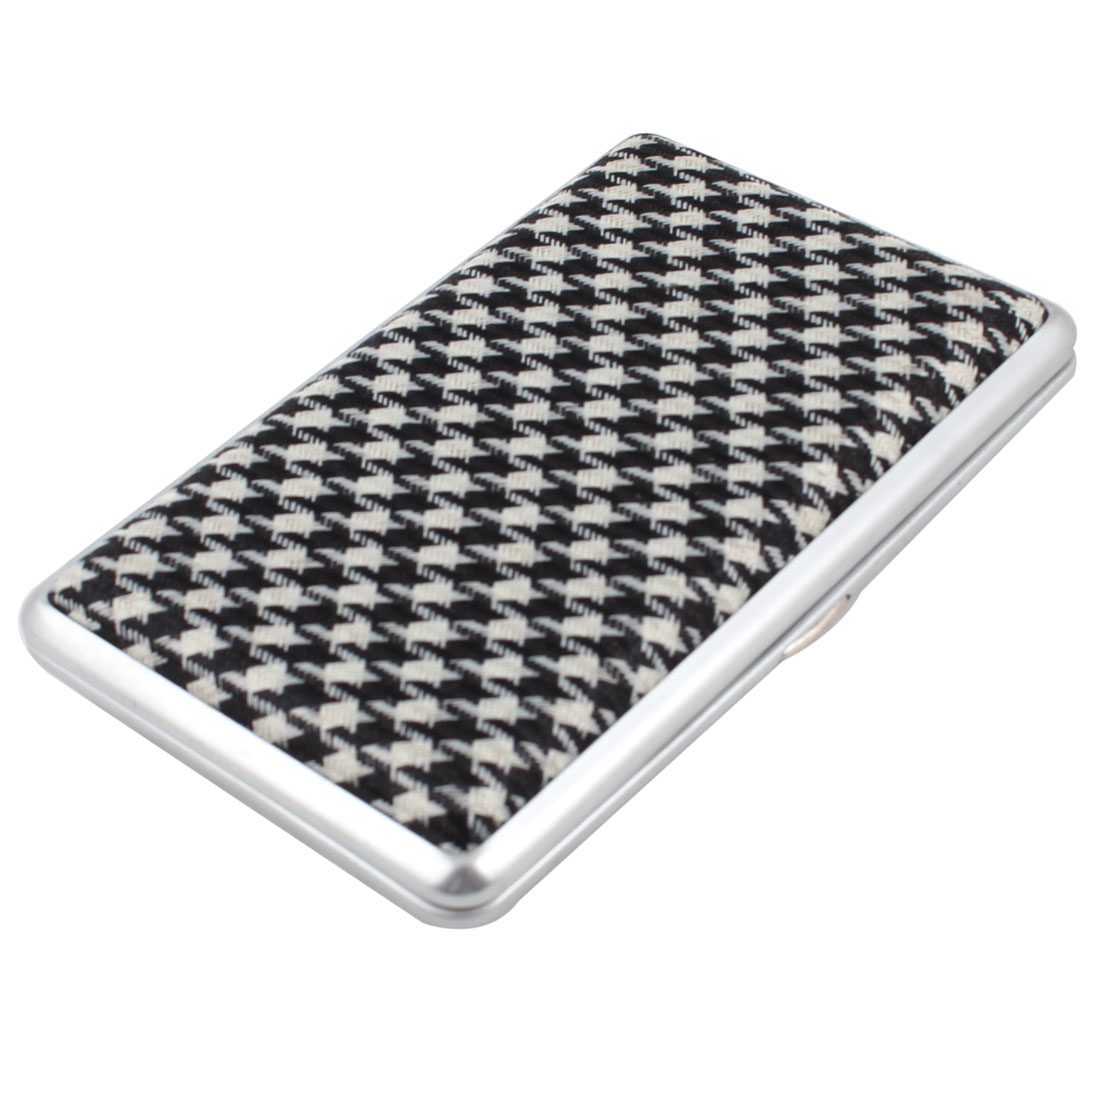 Rectangle Nylon Metal Cigarette Case Box Beige Black Silver Tone for Men